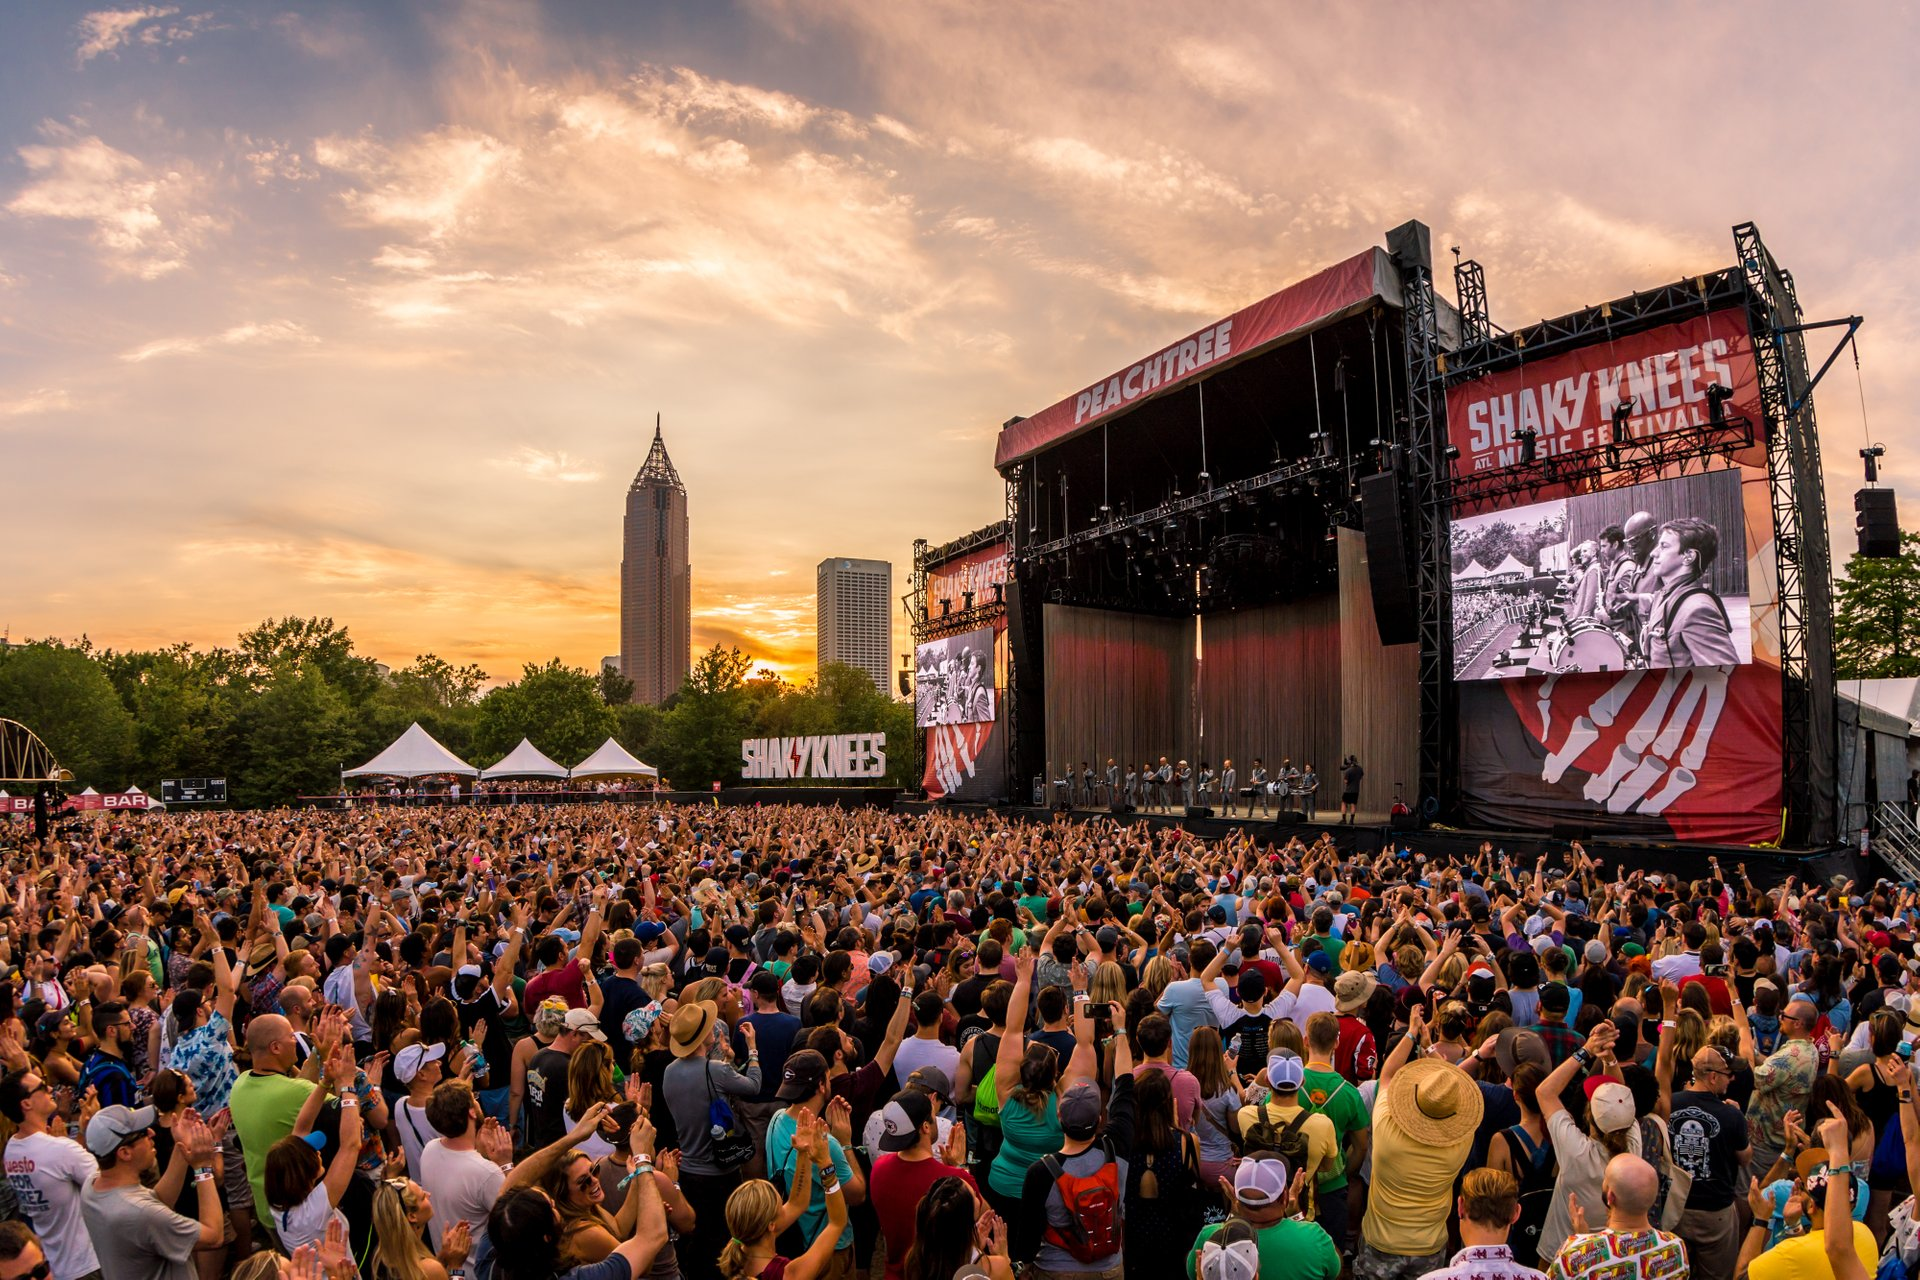 Shaky Knees Music Festival in Atlanta 2019 - Best Time